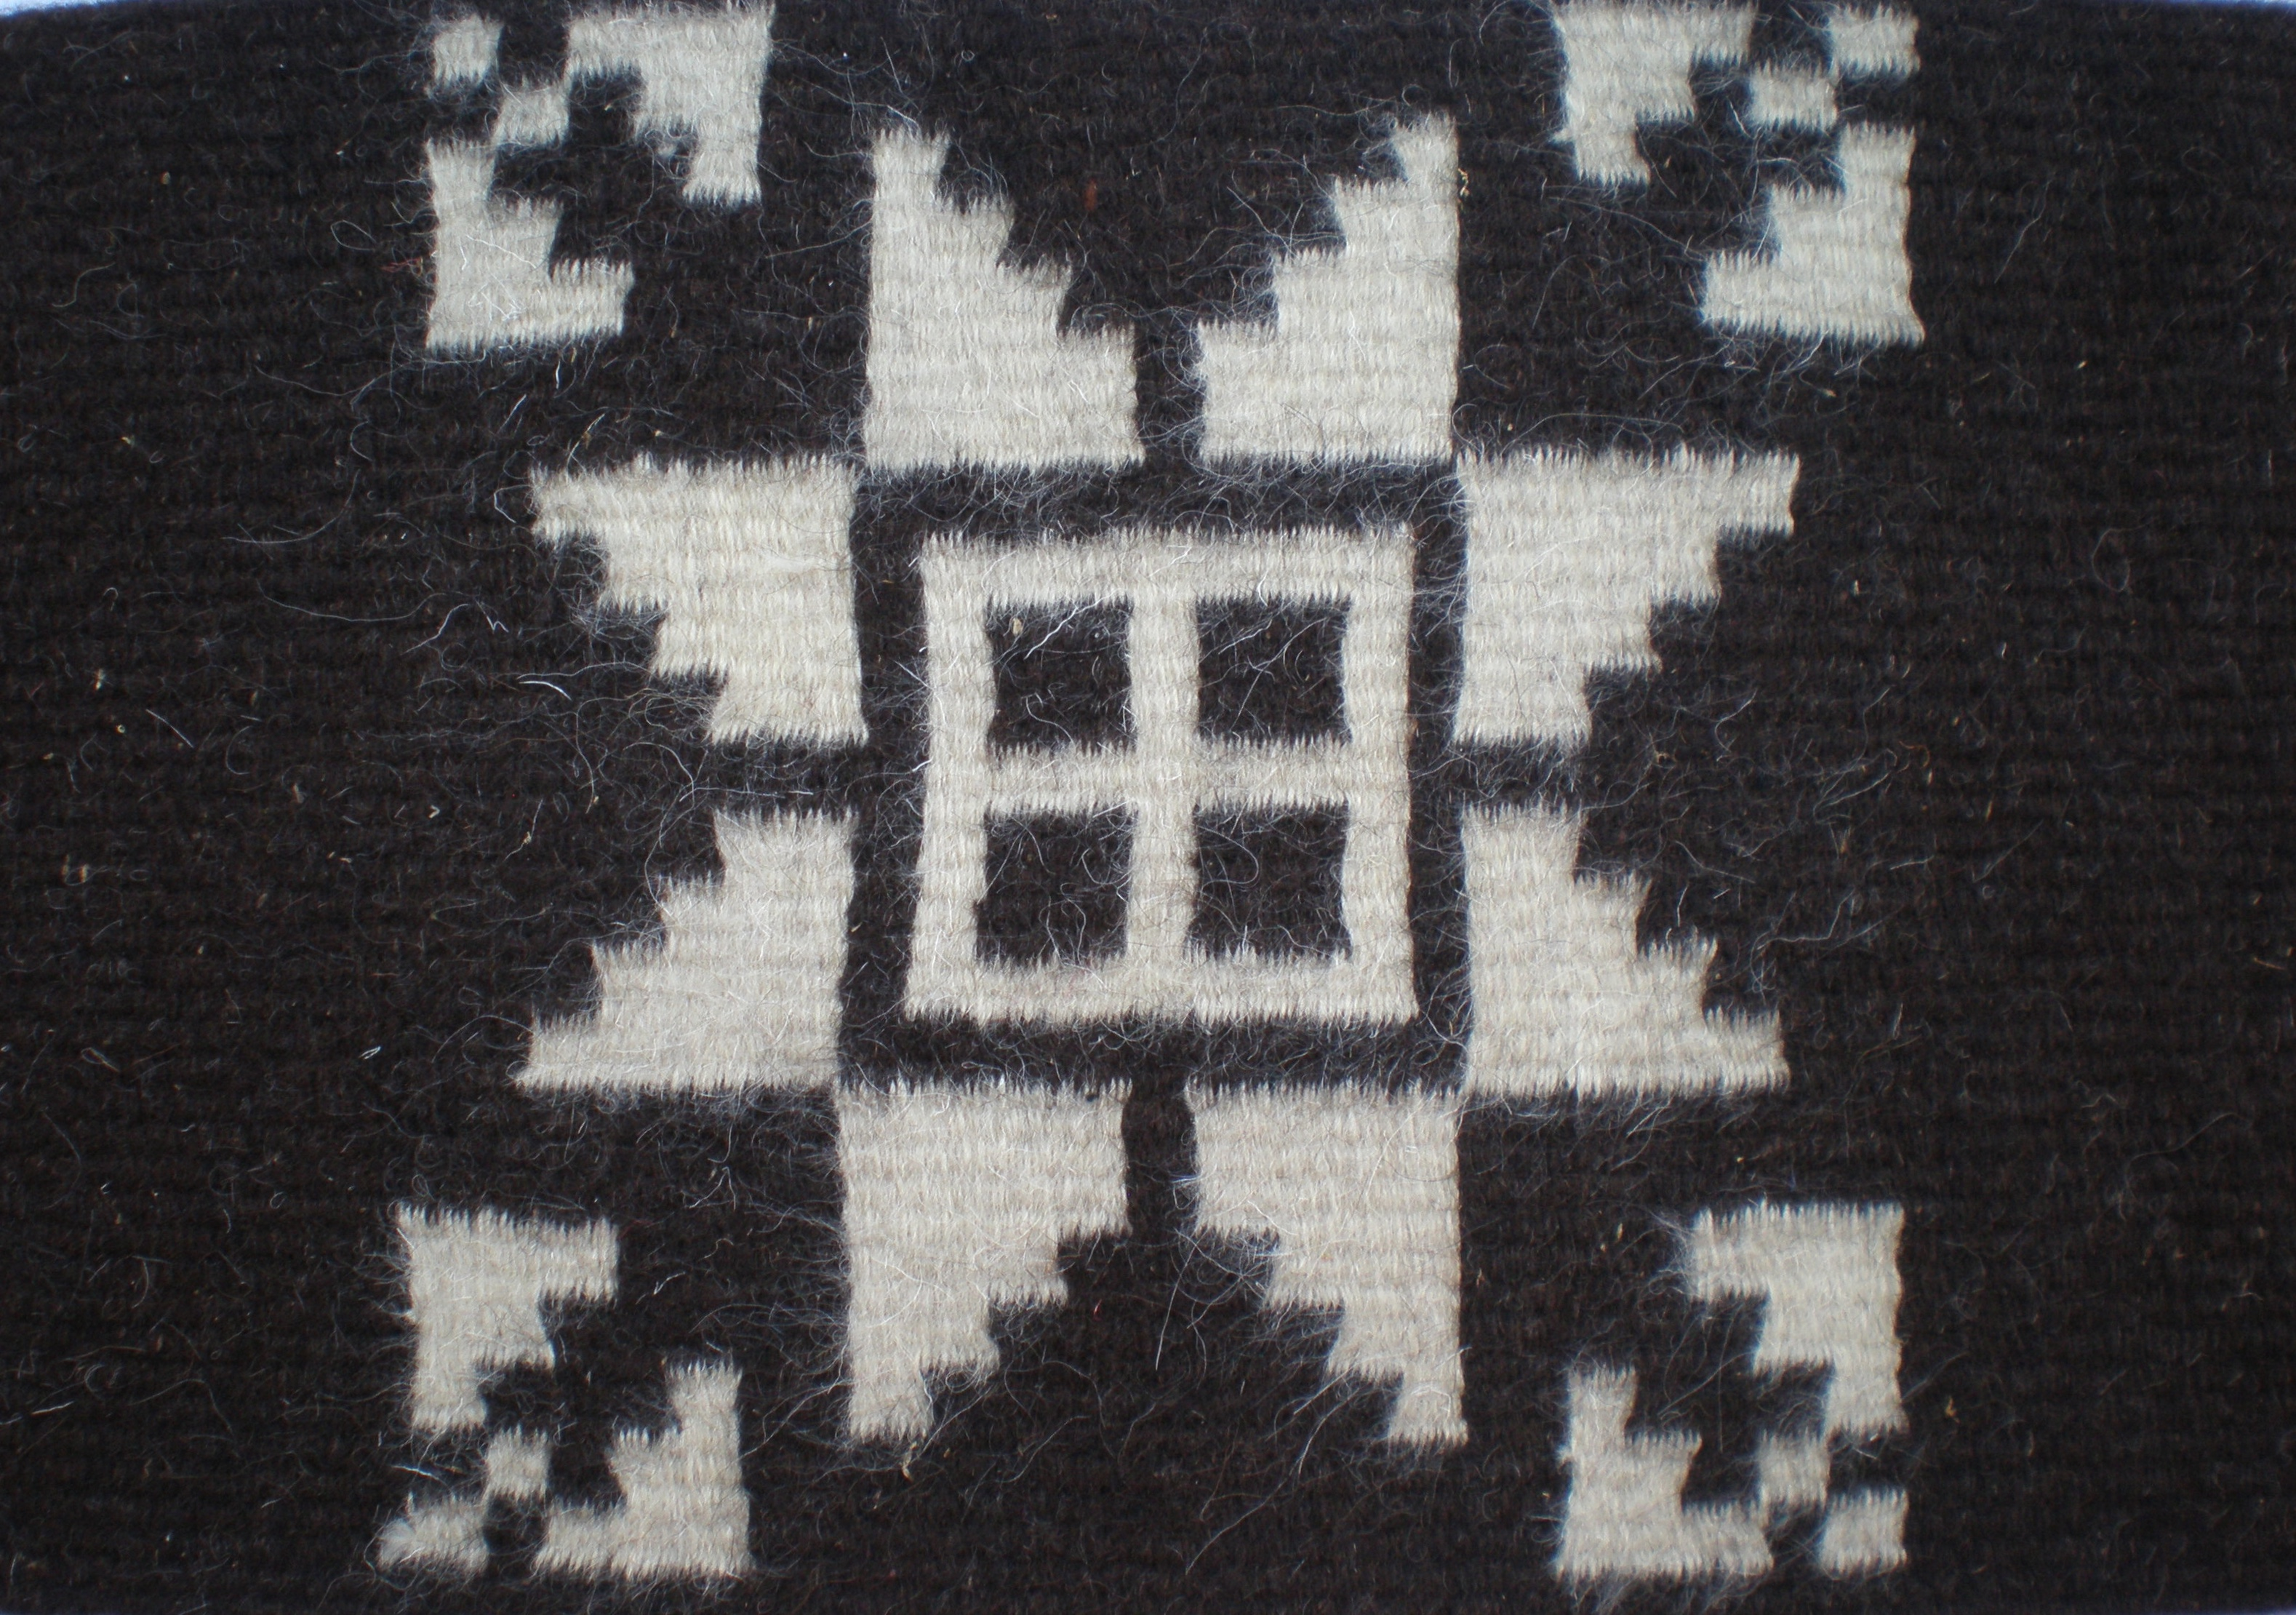 Woven in Kerasochori, Evrytania, Greece, 1978-79